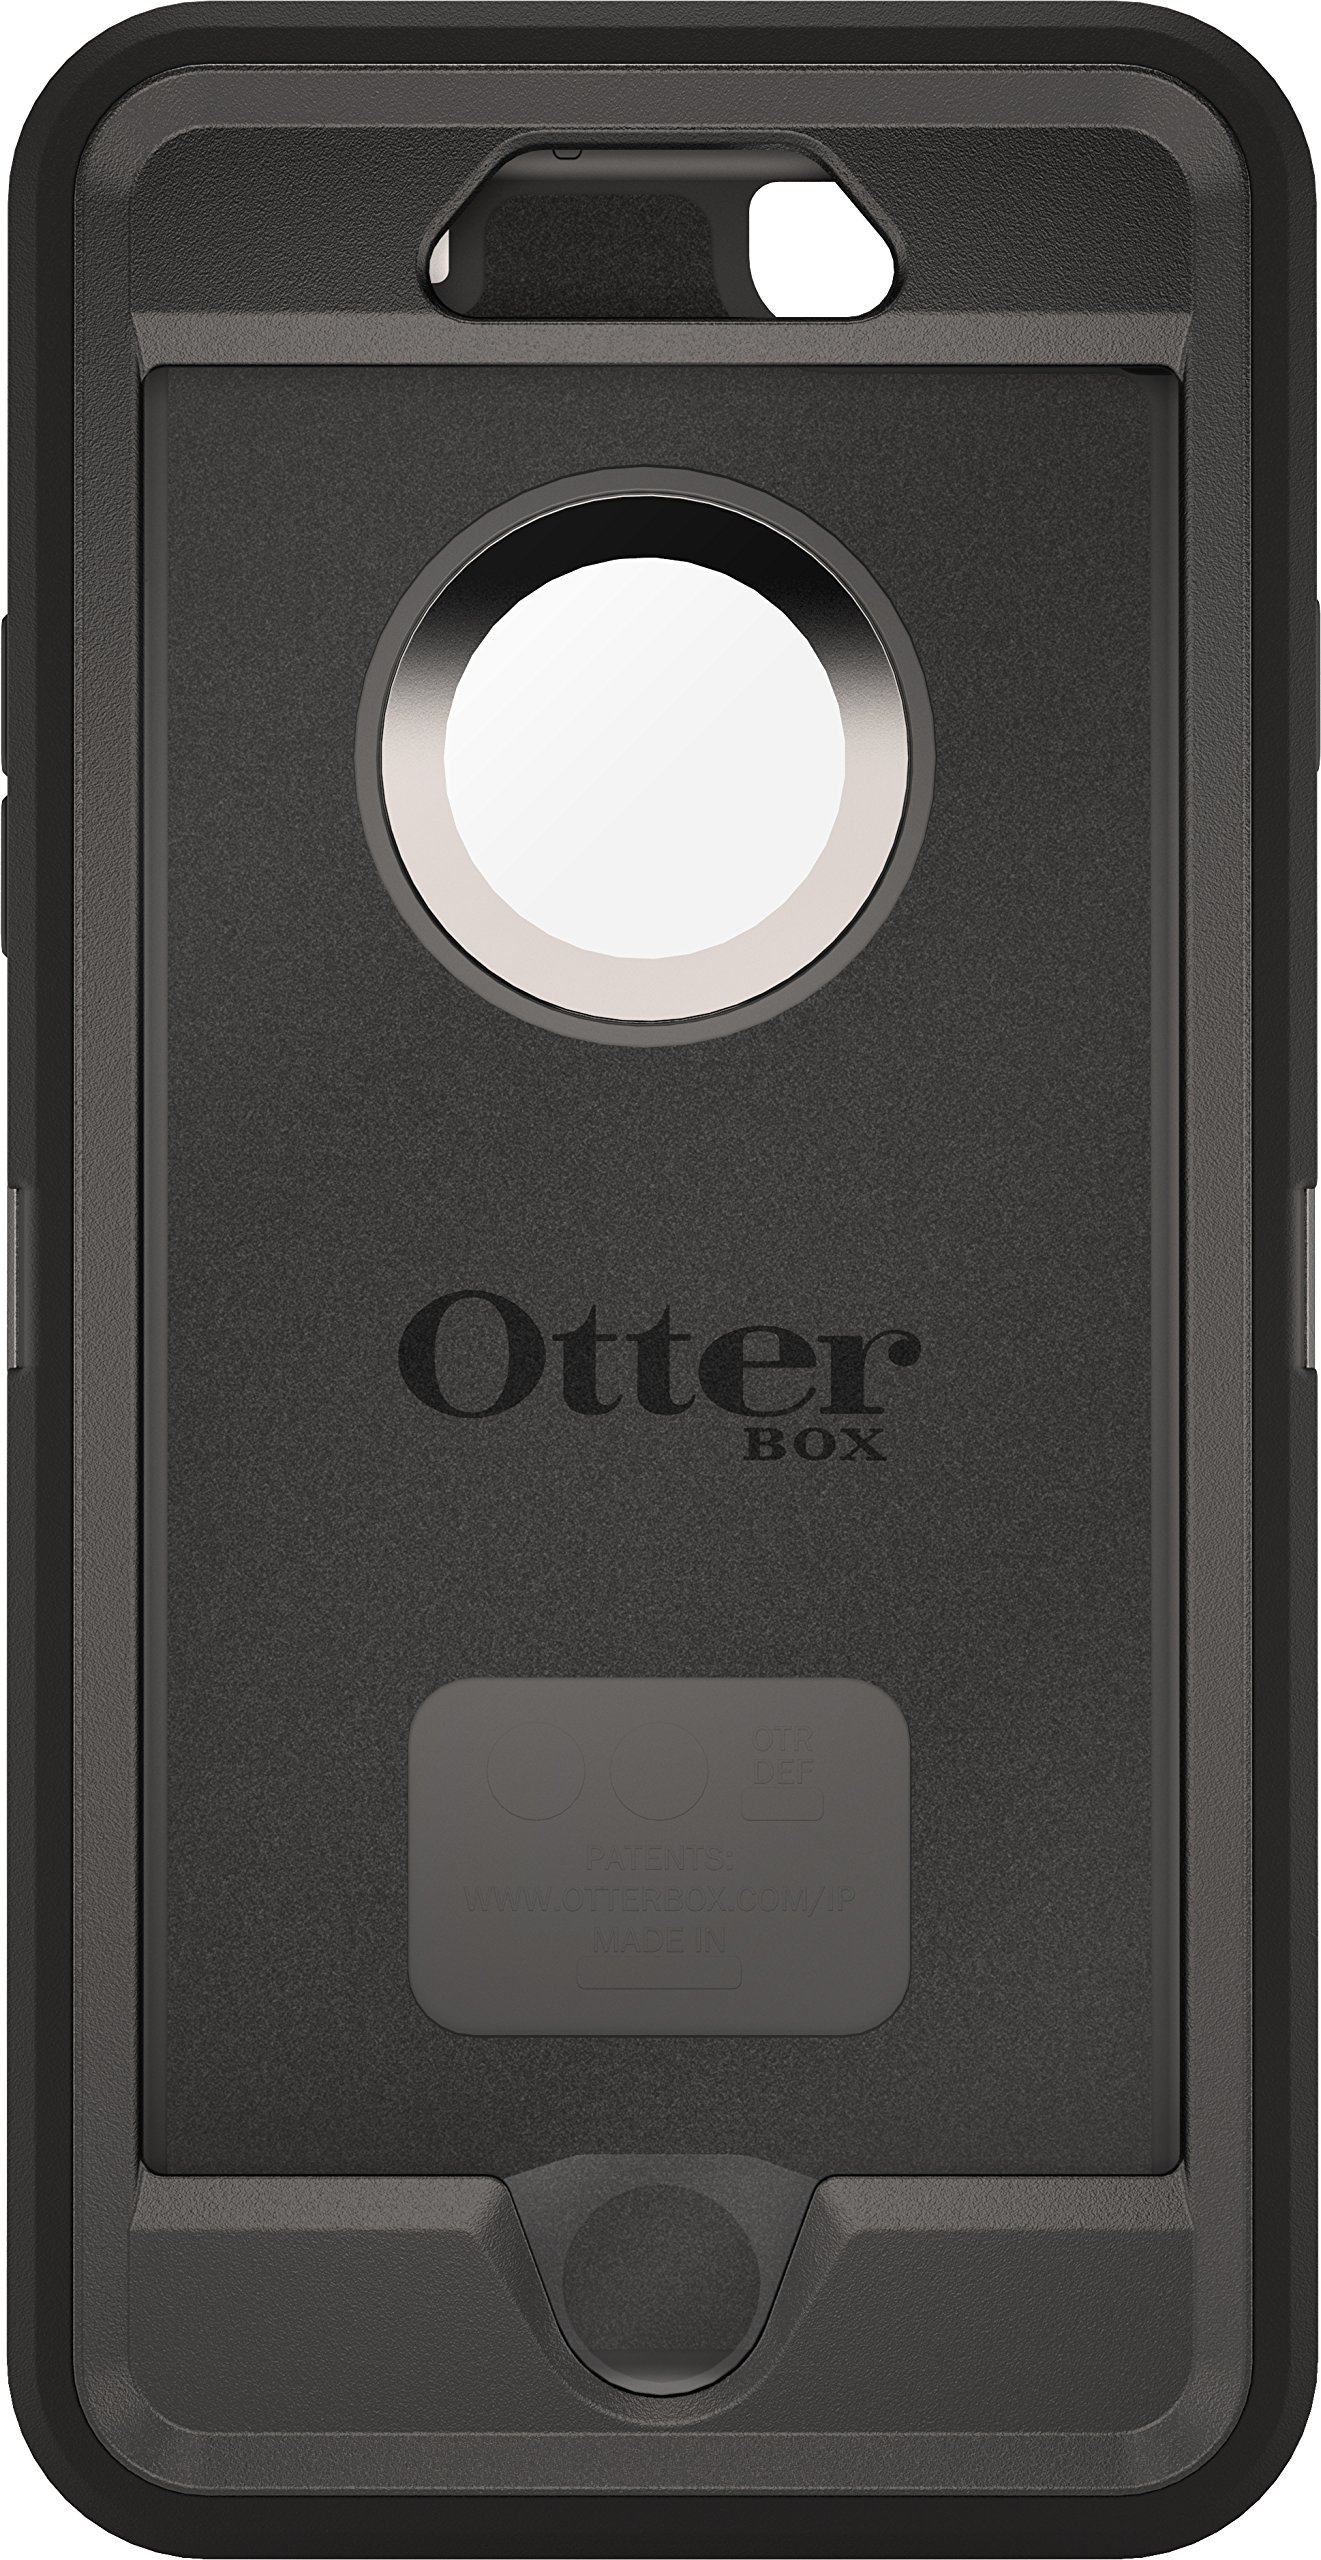 OtterBox Defender iPhone 6/6s Case - Retail Packaging - Black by OtterBox (Image #4)